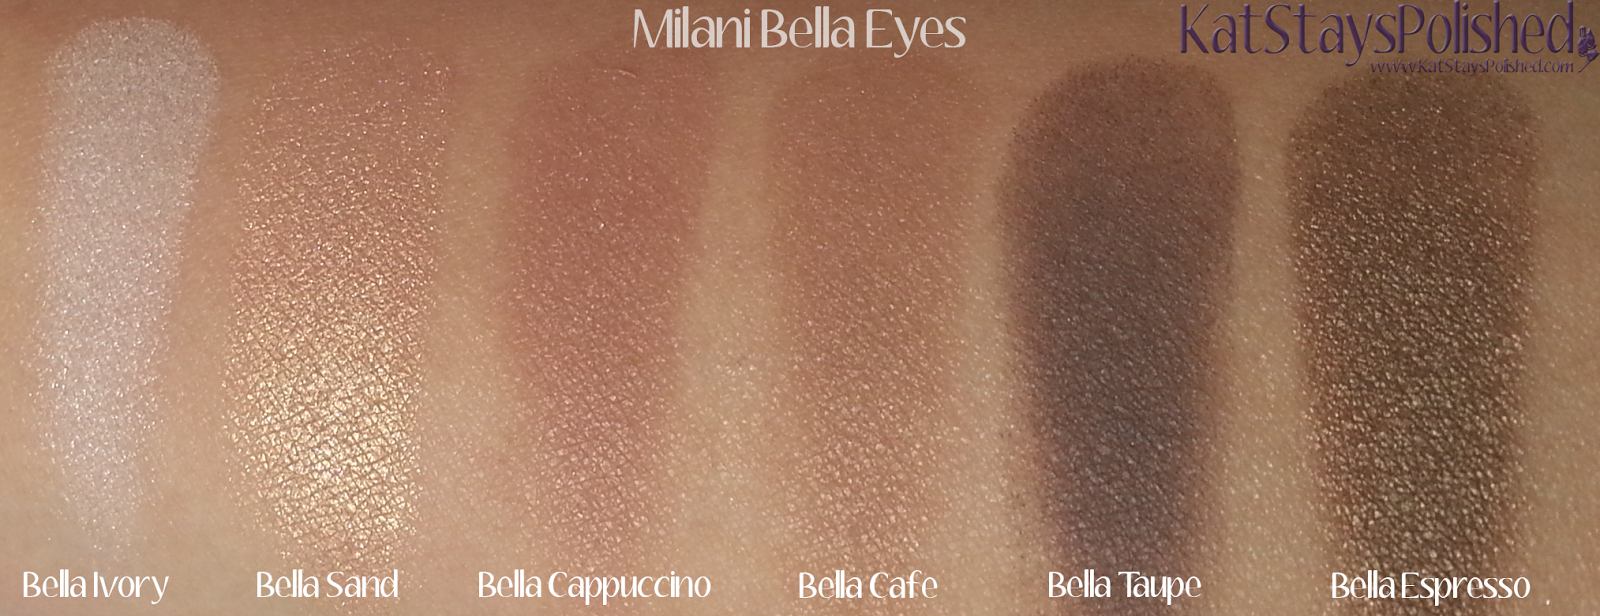 Milani Bella Eyes Gel Powder Eye Shadow - Swatches 01-06 | Kat Stays Polished